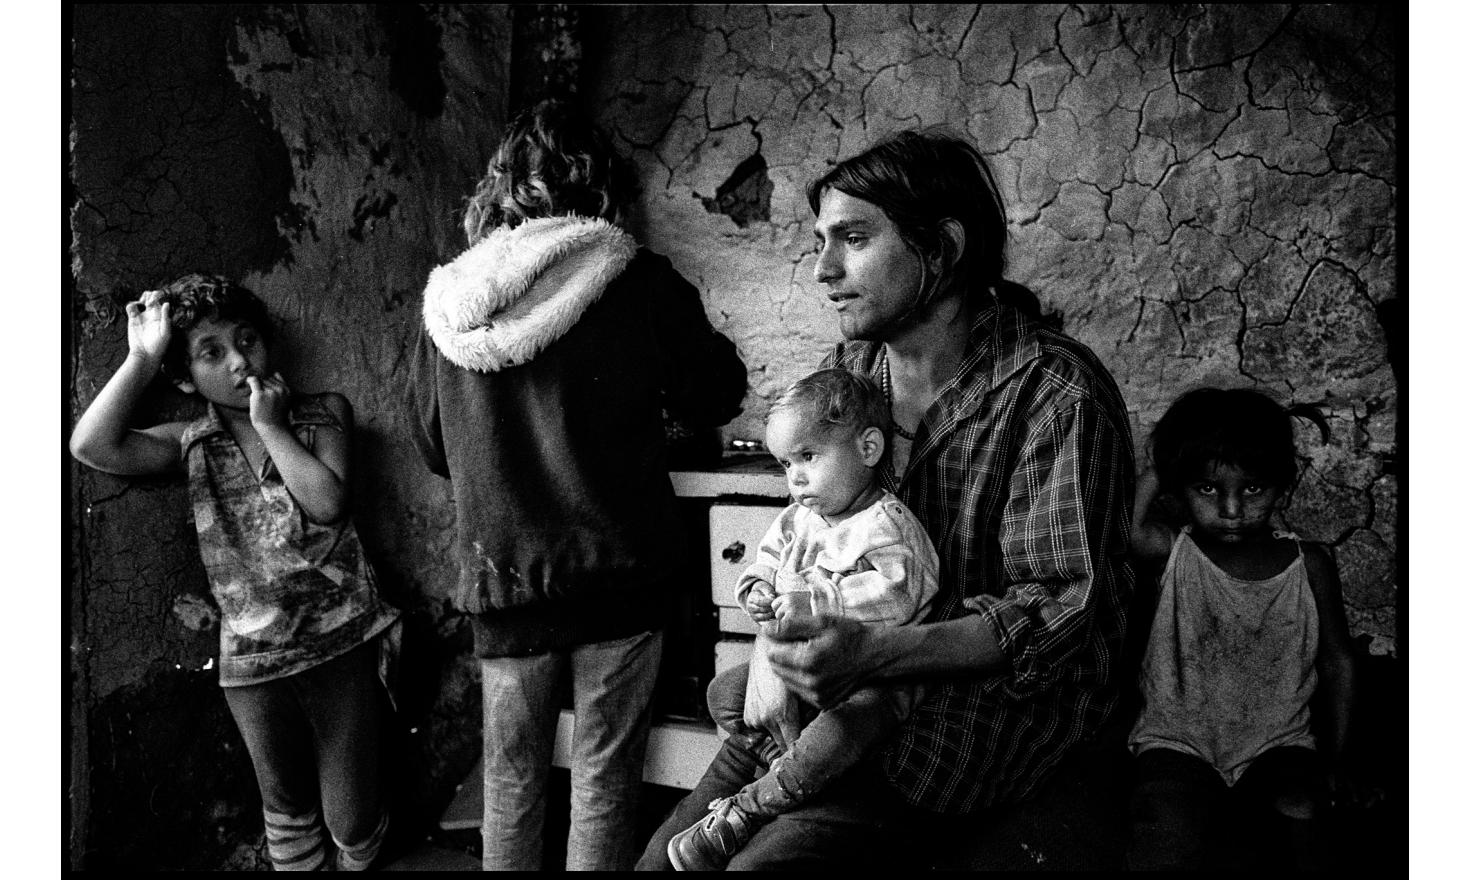 Families of youg roma live very poorly, away from the center of the roma district. Ostravany, Slovakia. May 2010.